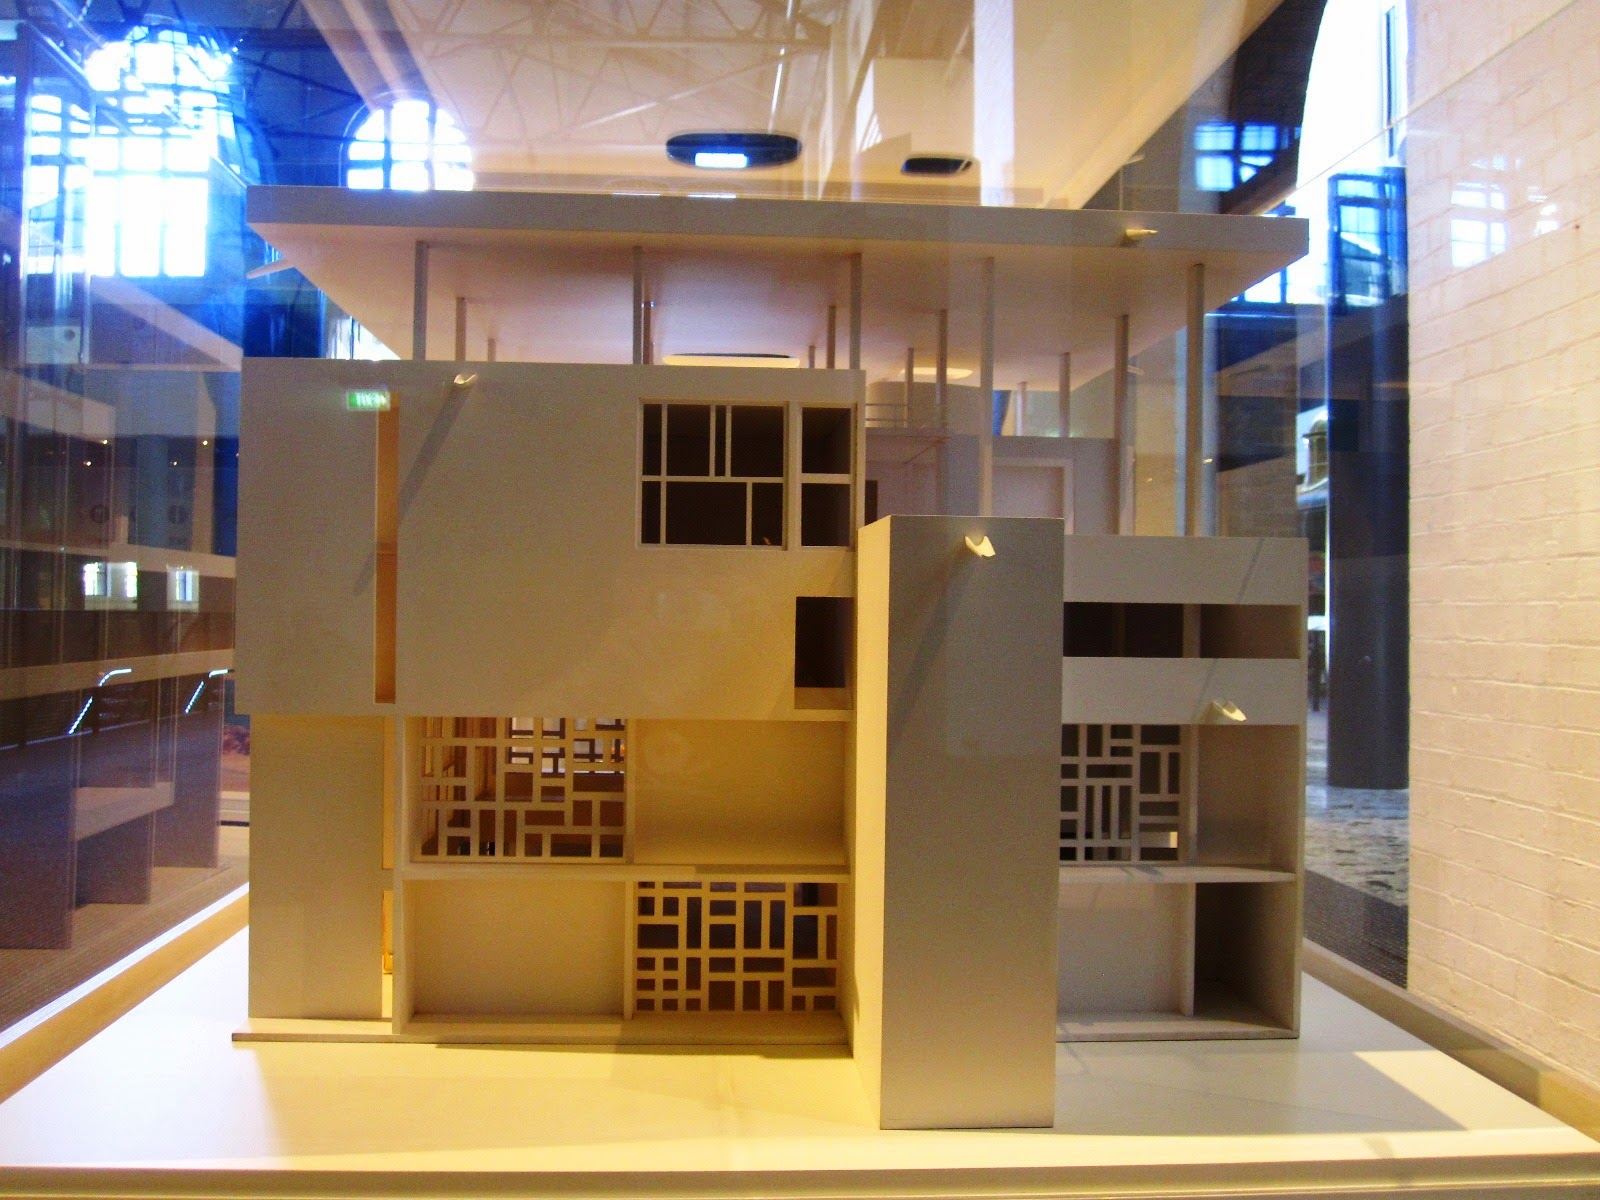 Rear view of a model of Le Corbusier's Villa Shodhan.